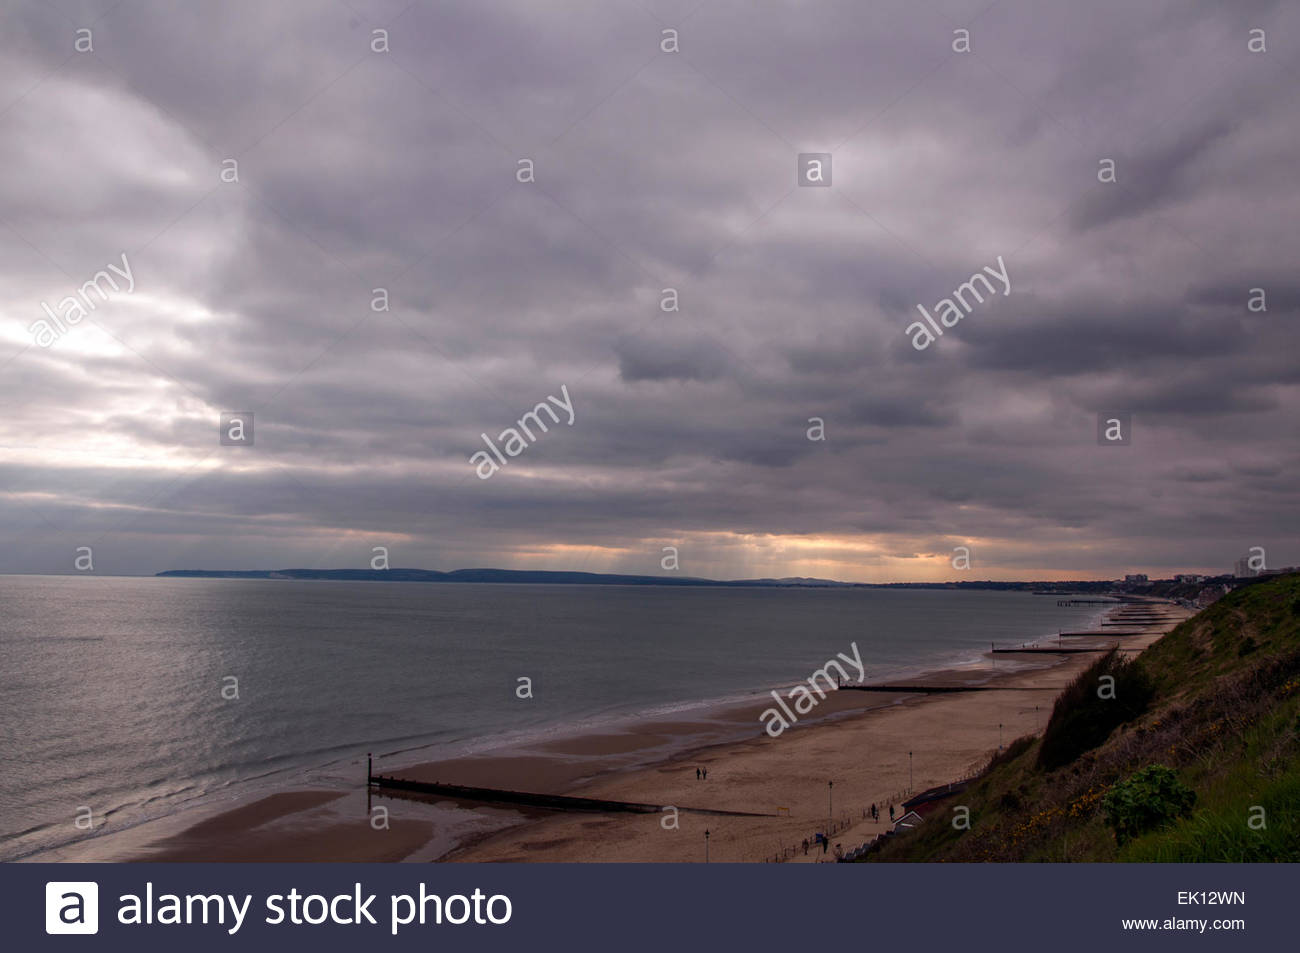 Bournemouth, Dorset, England. 4th April 2015. UK weather. Rays of sunshine break through the thick clouds over the - Stock Image